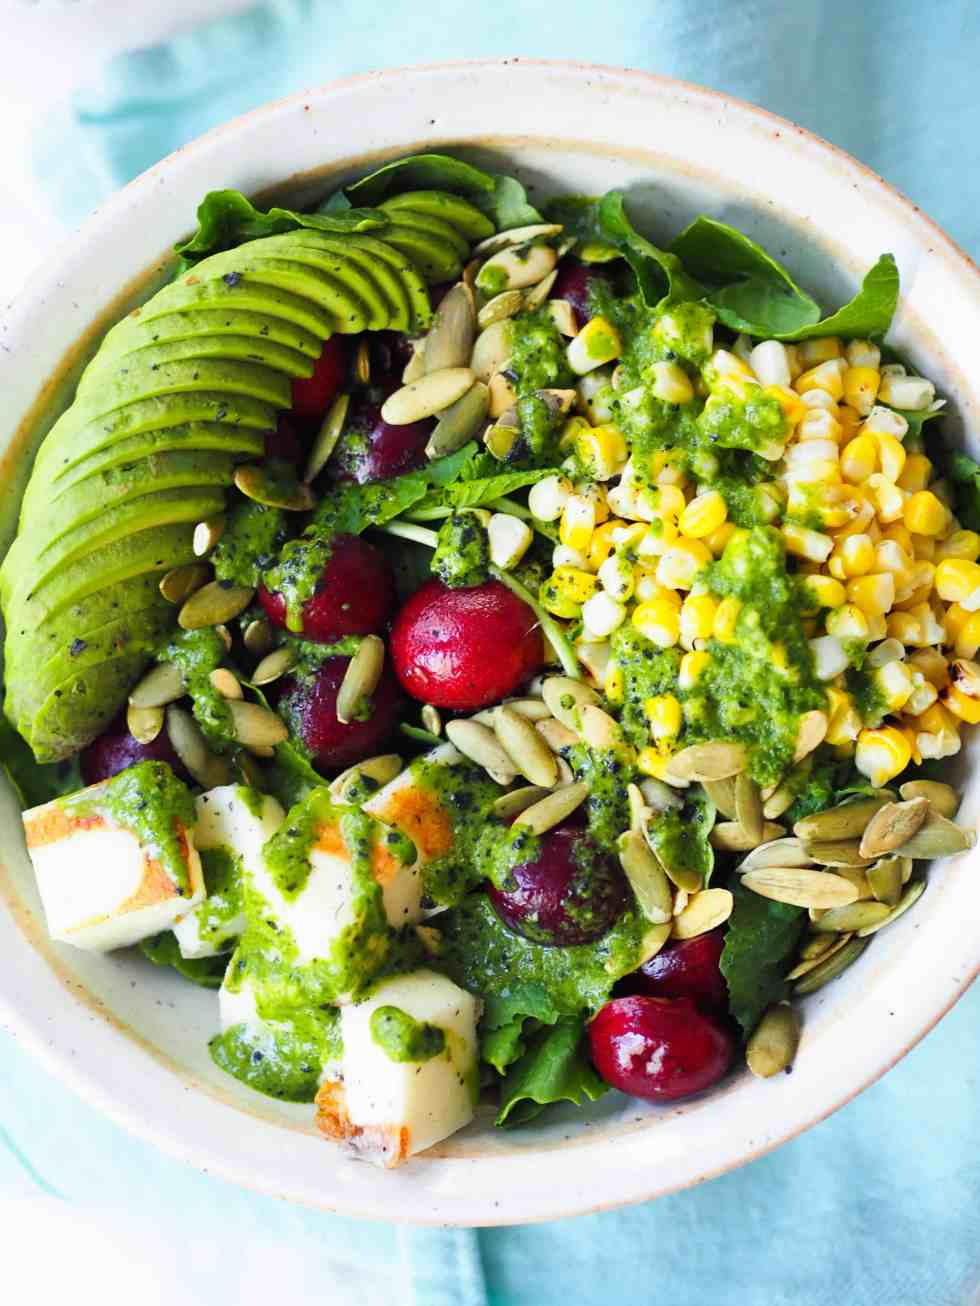 Baby kale salad with avocado and cherries in white bowl with blue napkin.